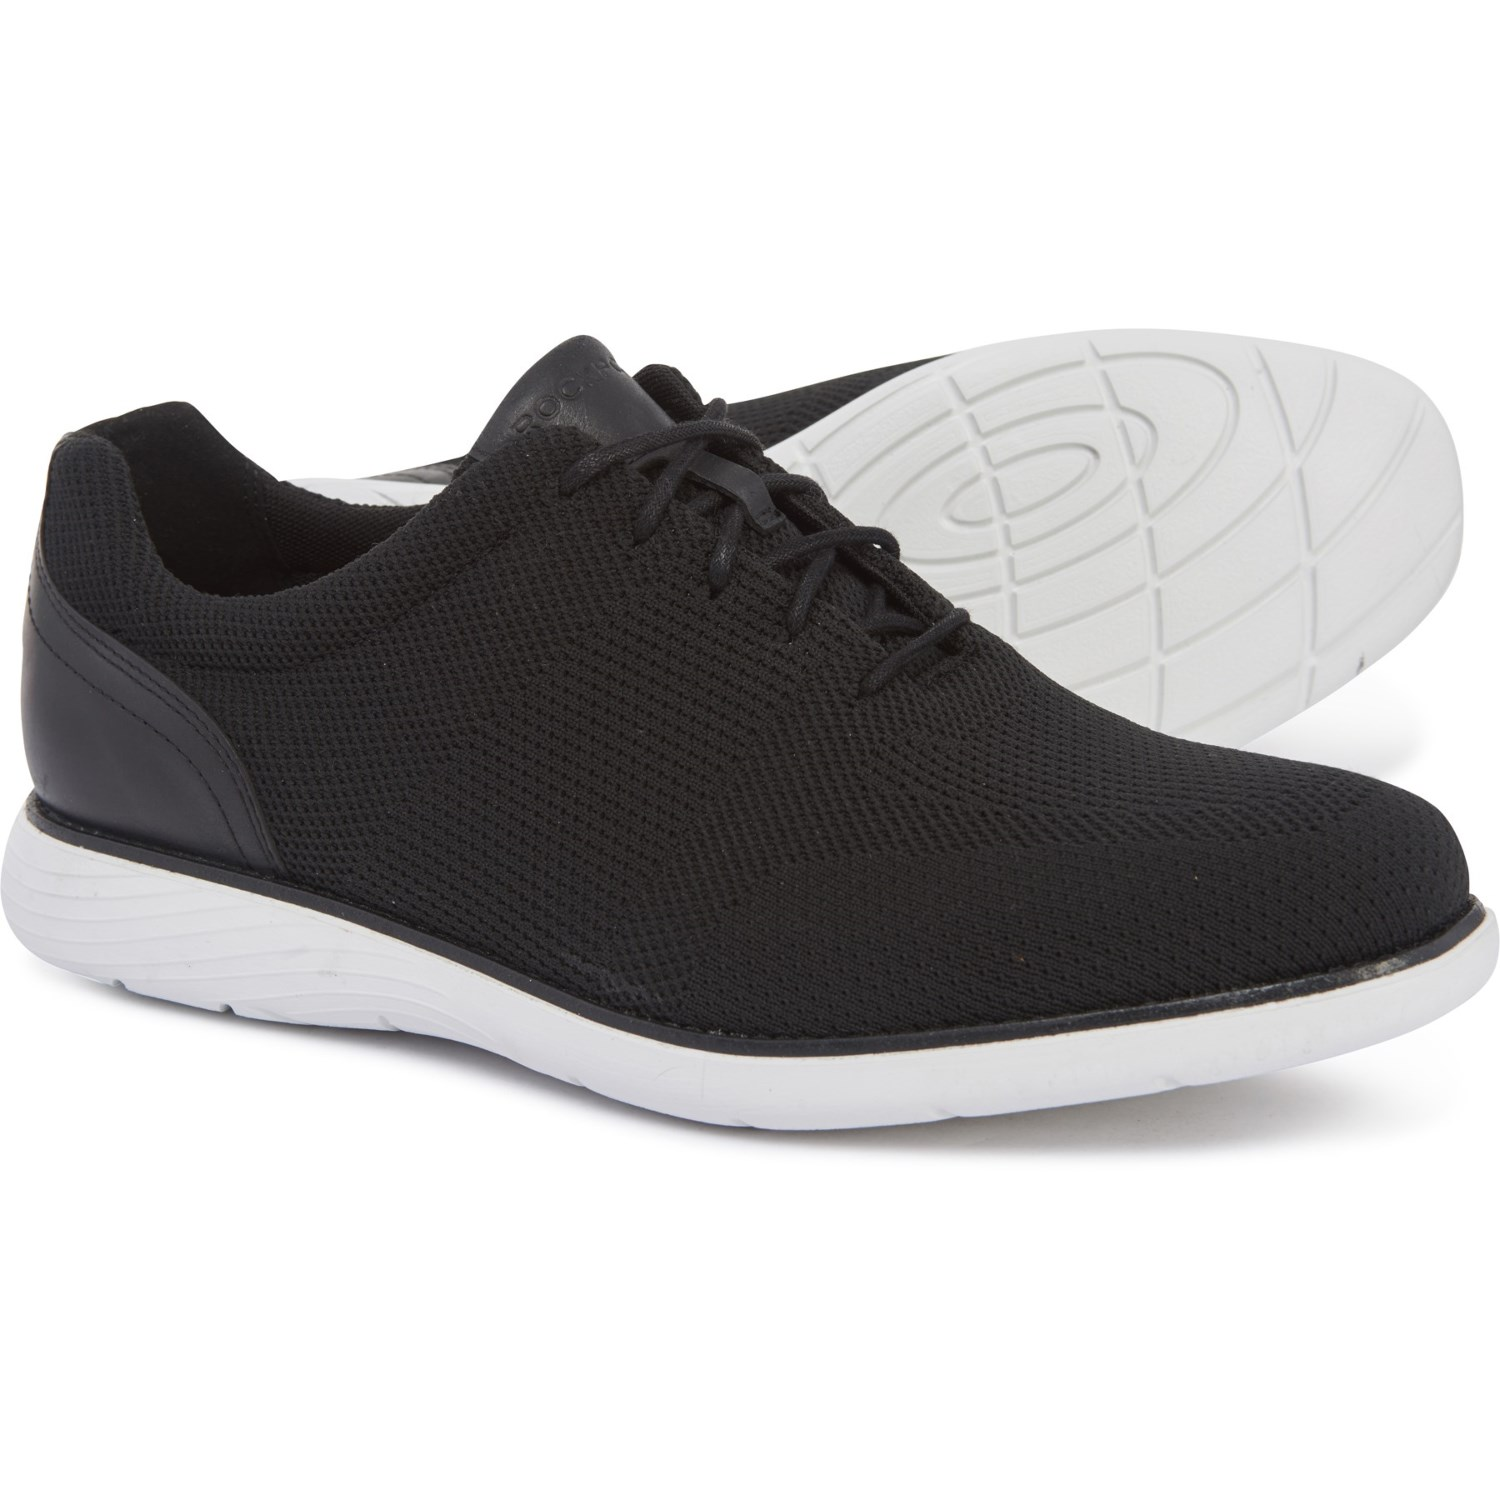 Rockport Garett Mesh Lace Up Sneakers For Men